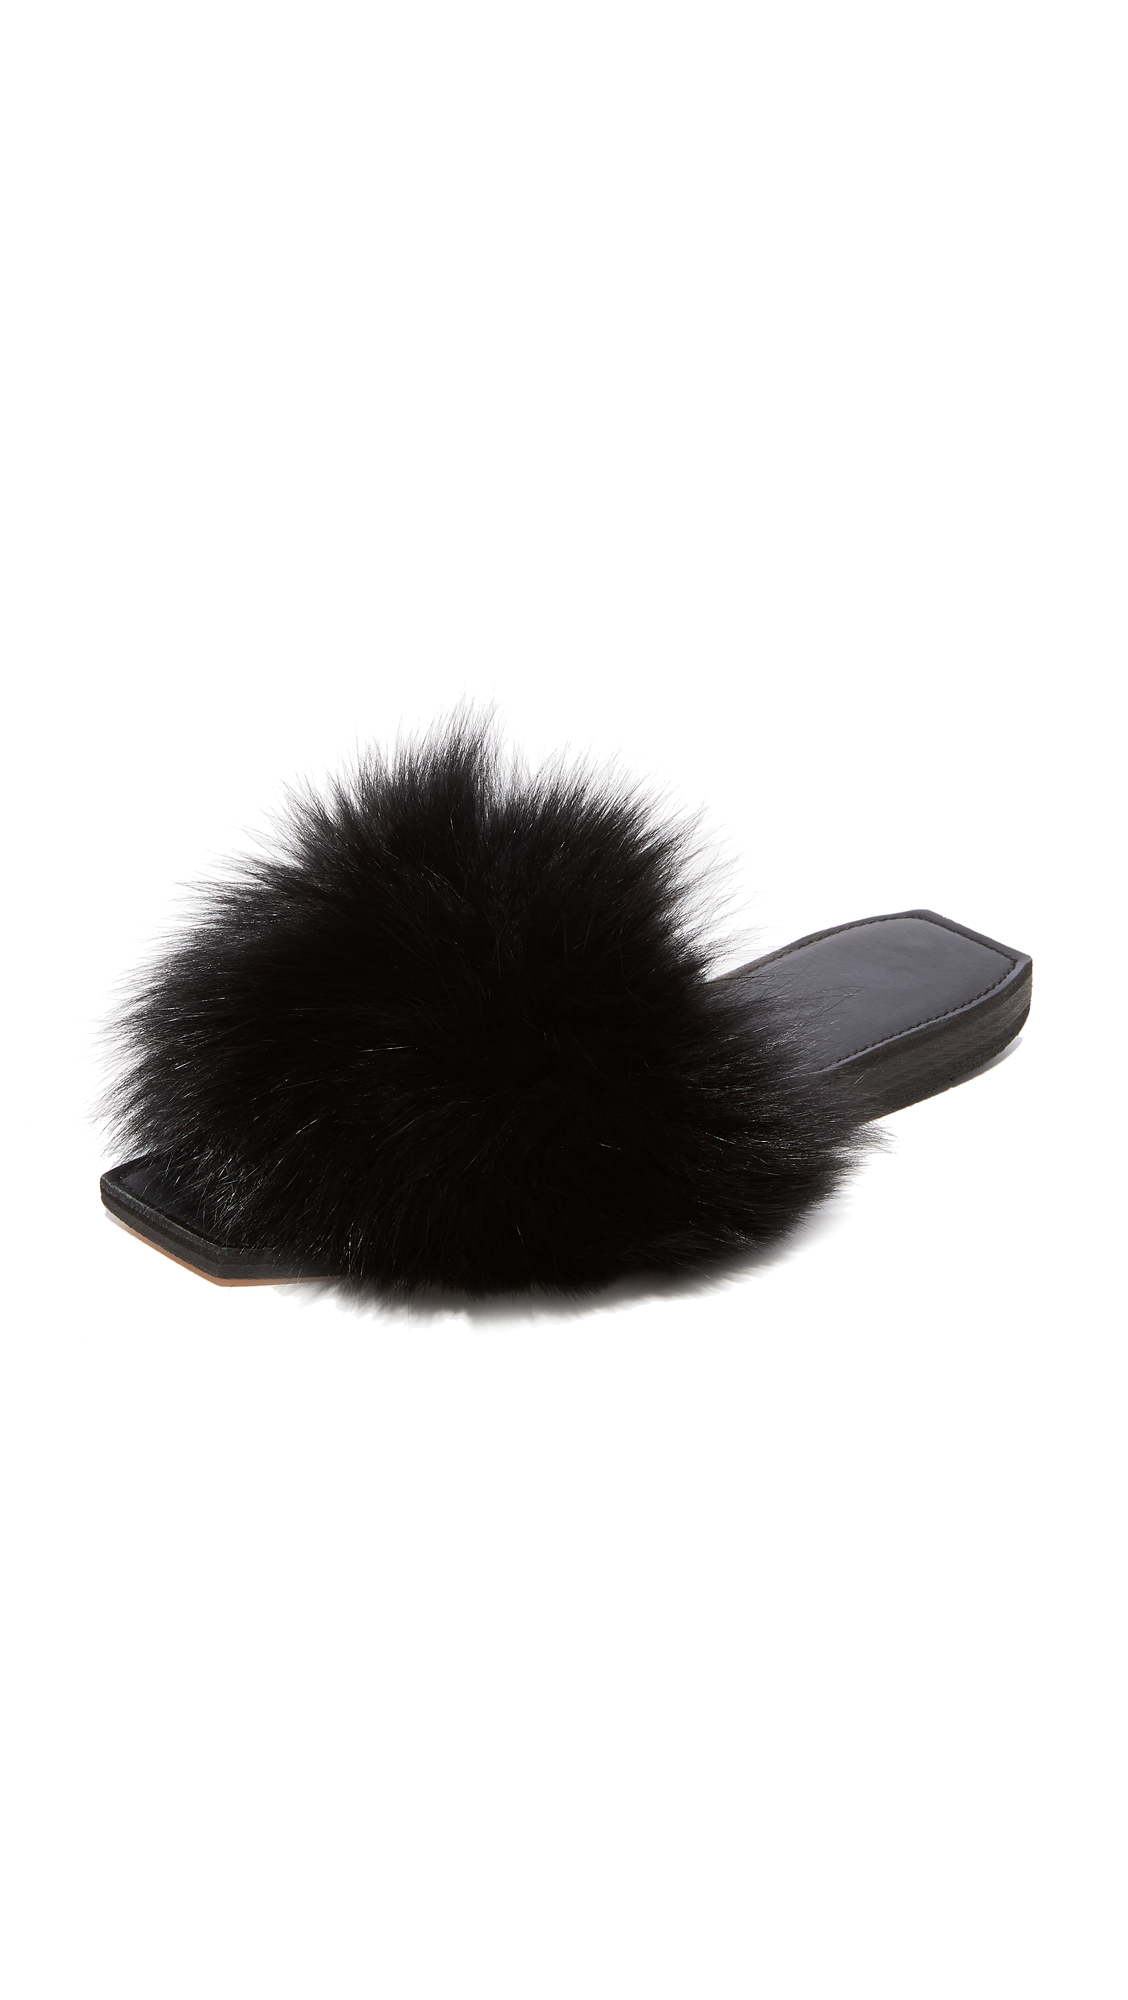 Parme Marin Furry Baby Slide - Black Fur/Black